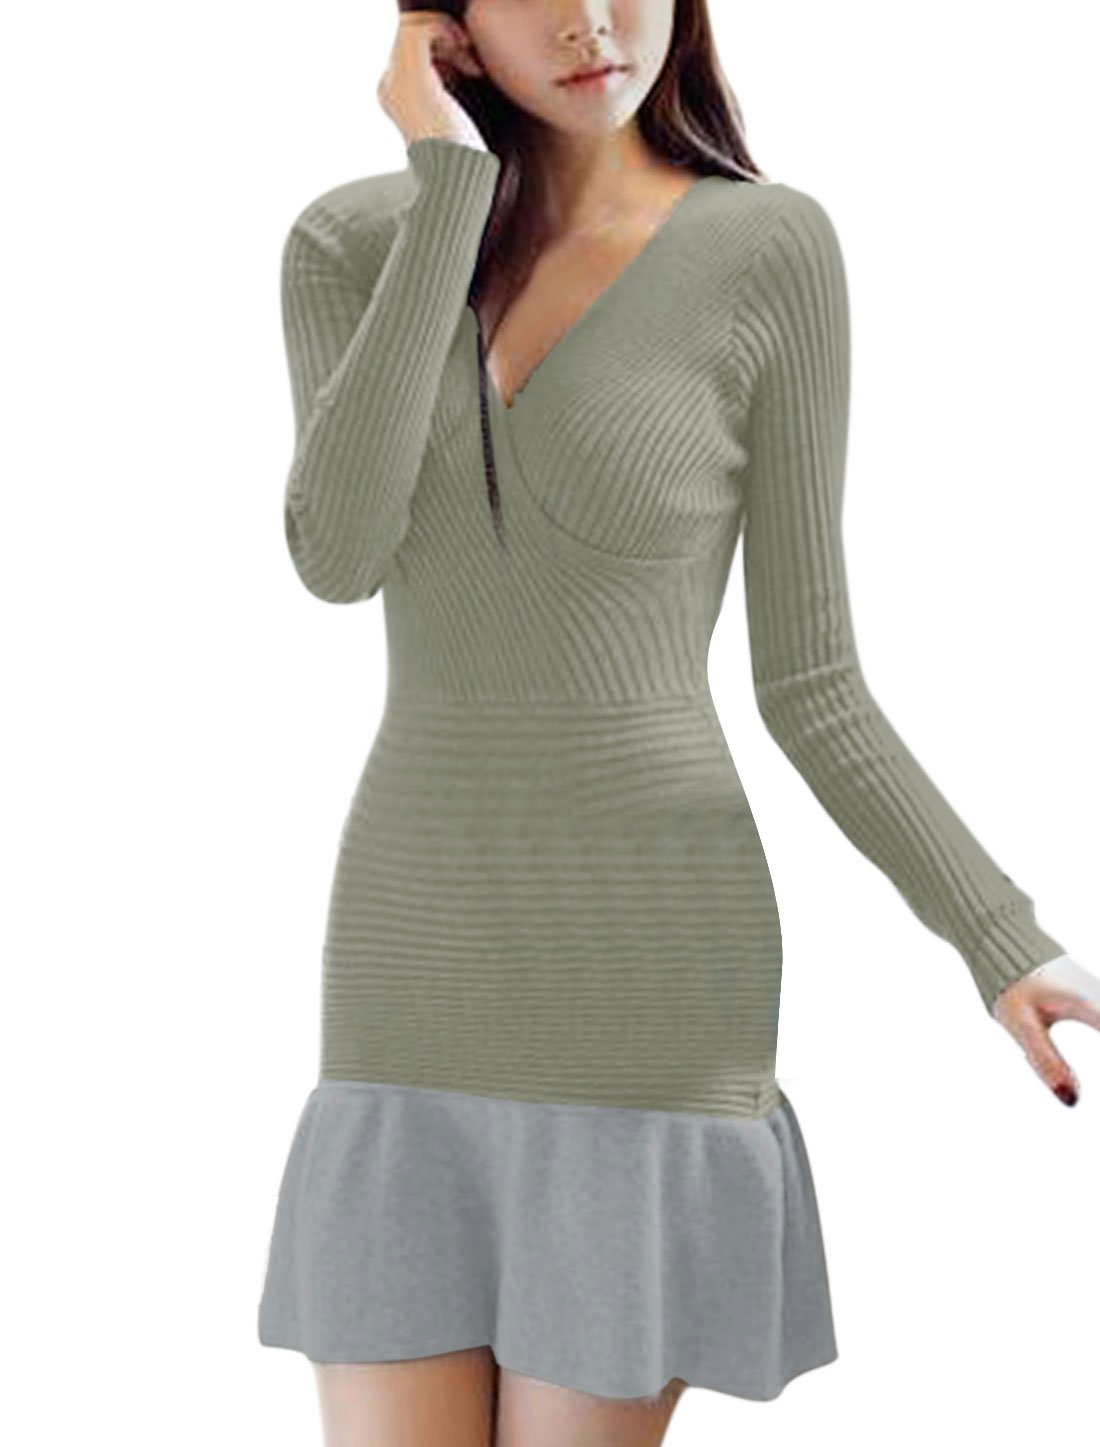 Lady Cross V Neck Pullover Slim Knitted Dress Light Gray M